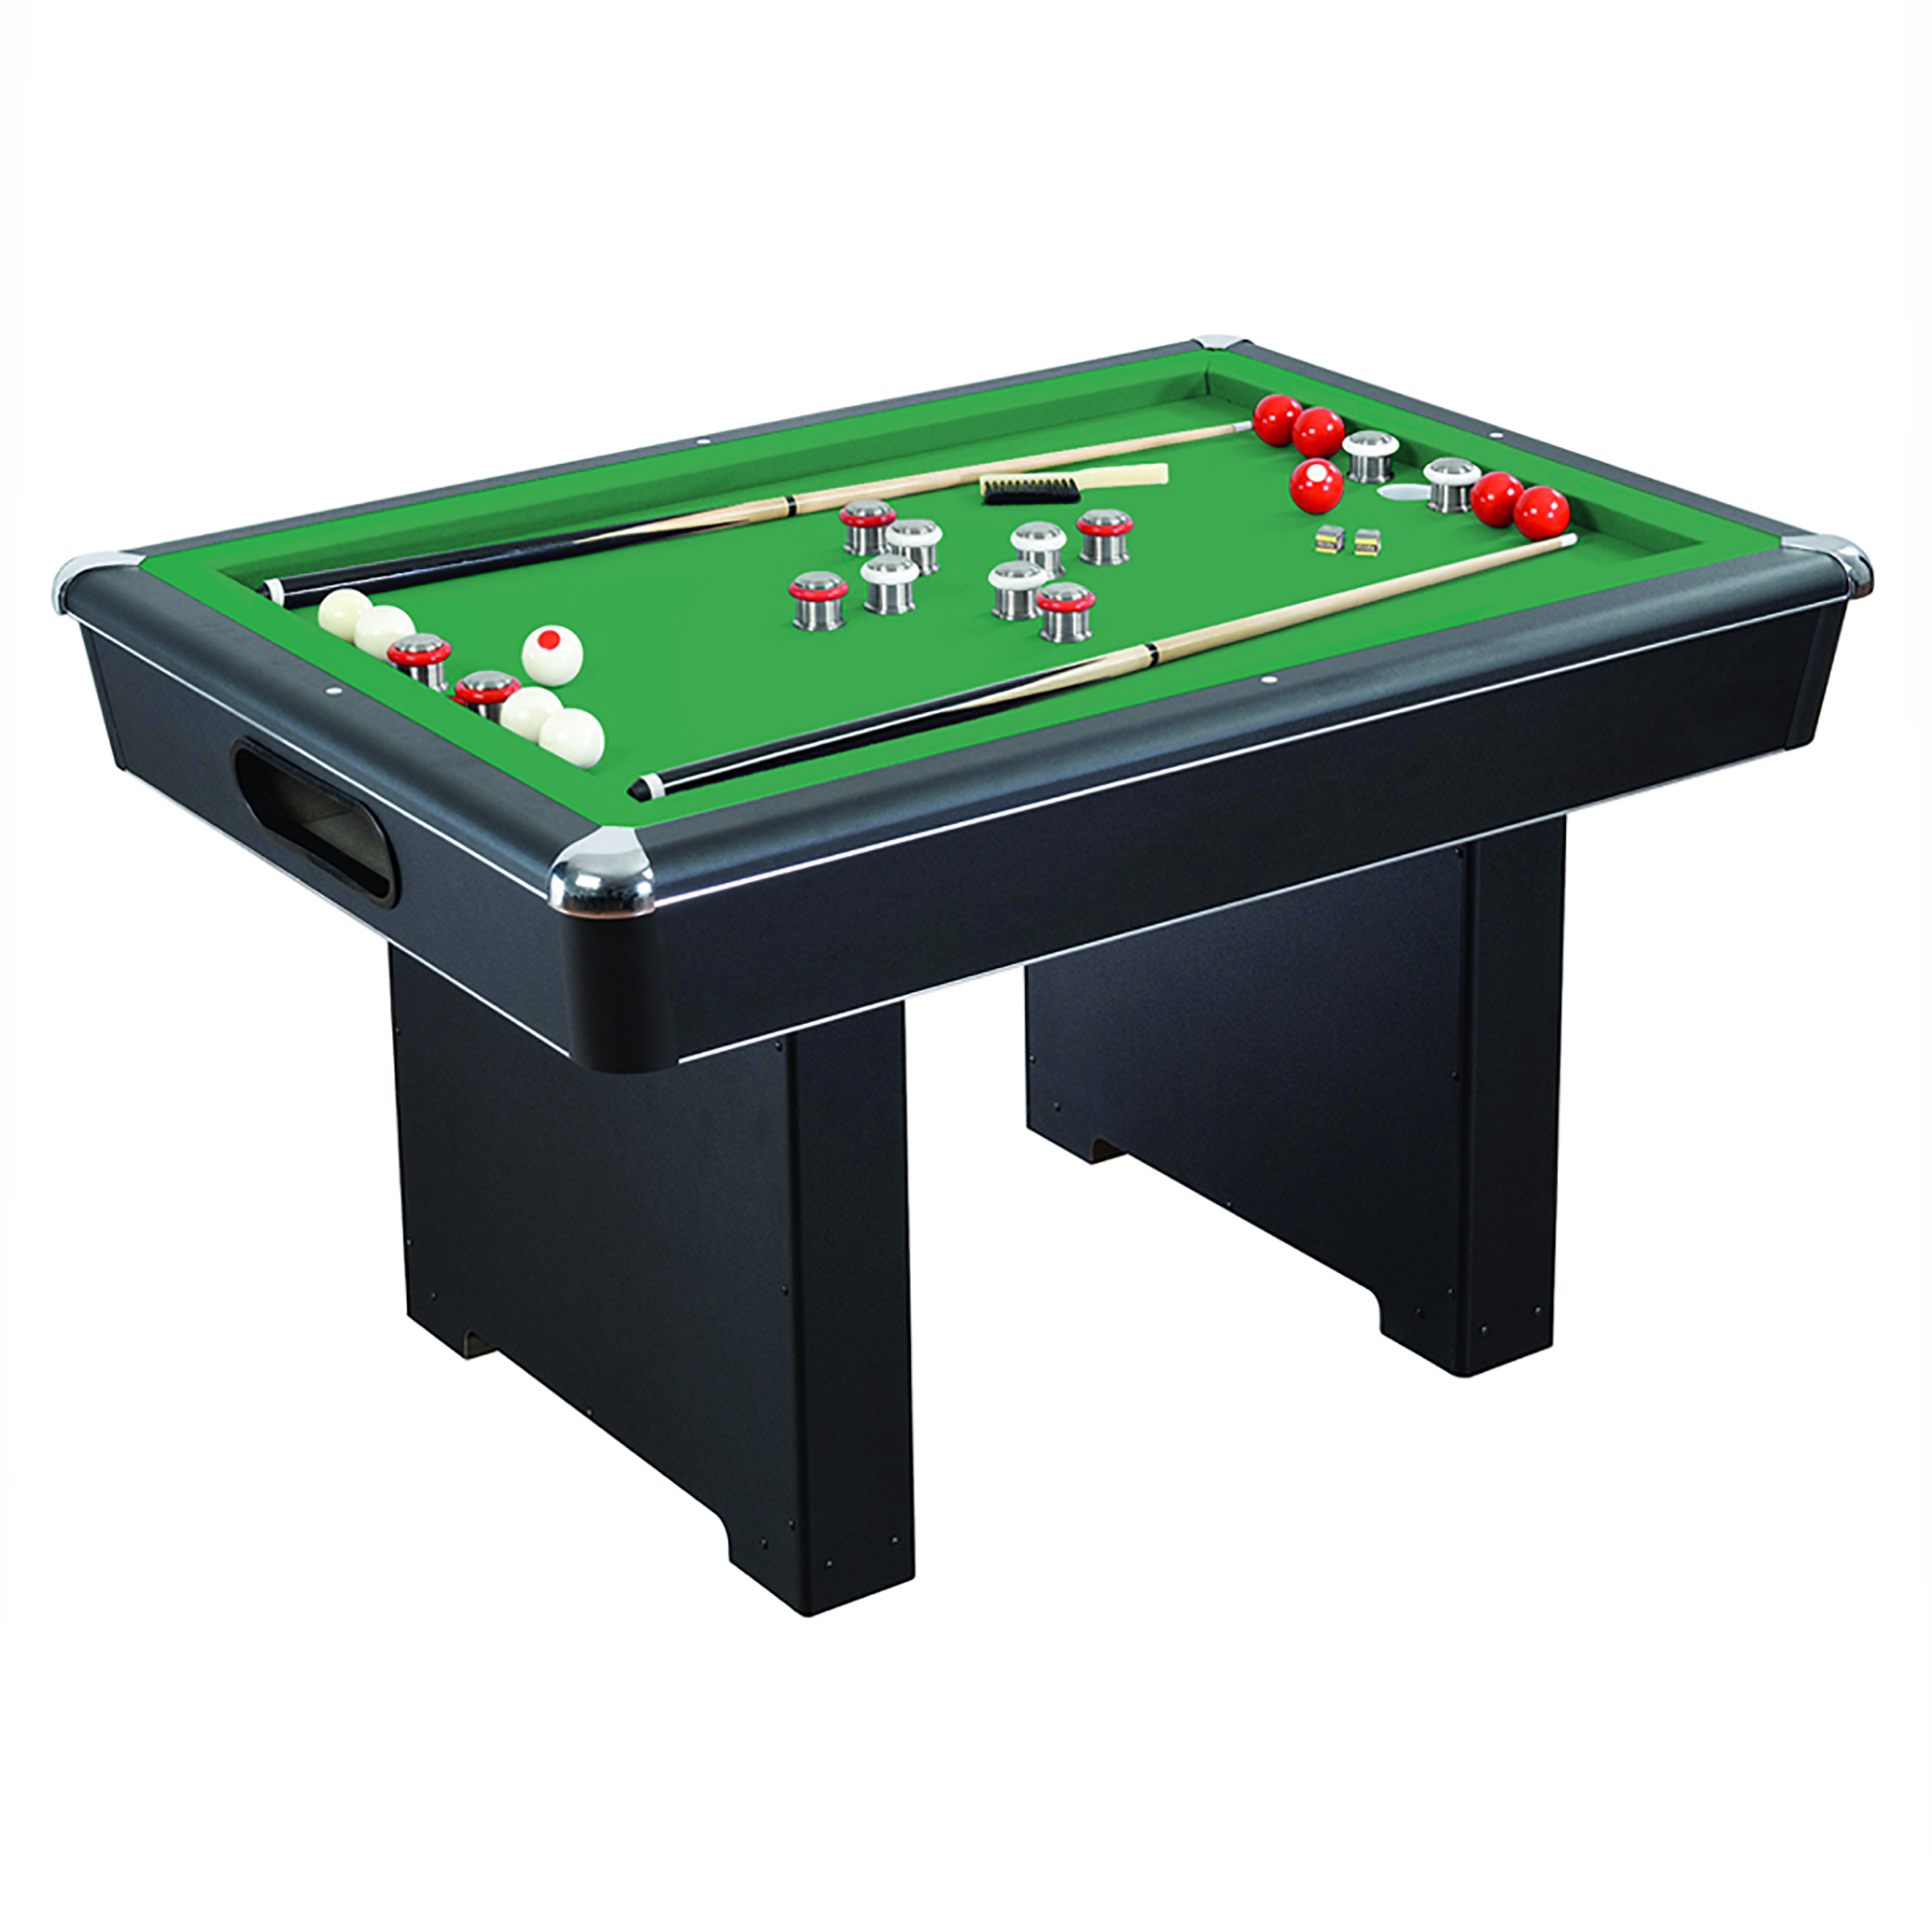 Hathaway Renegade 54-In Slate Bumper Pool Table for Family Game Rooms with Green Felt, 48-In Cues, Balls, Brush and... by Blue Wave